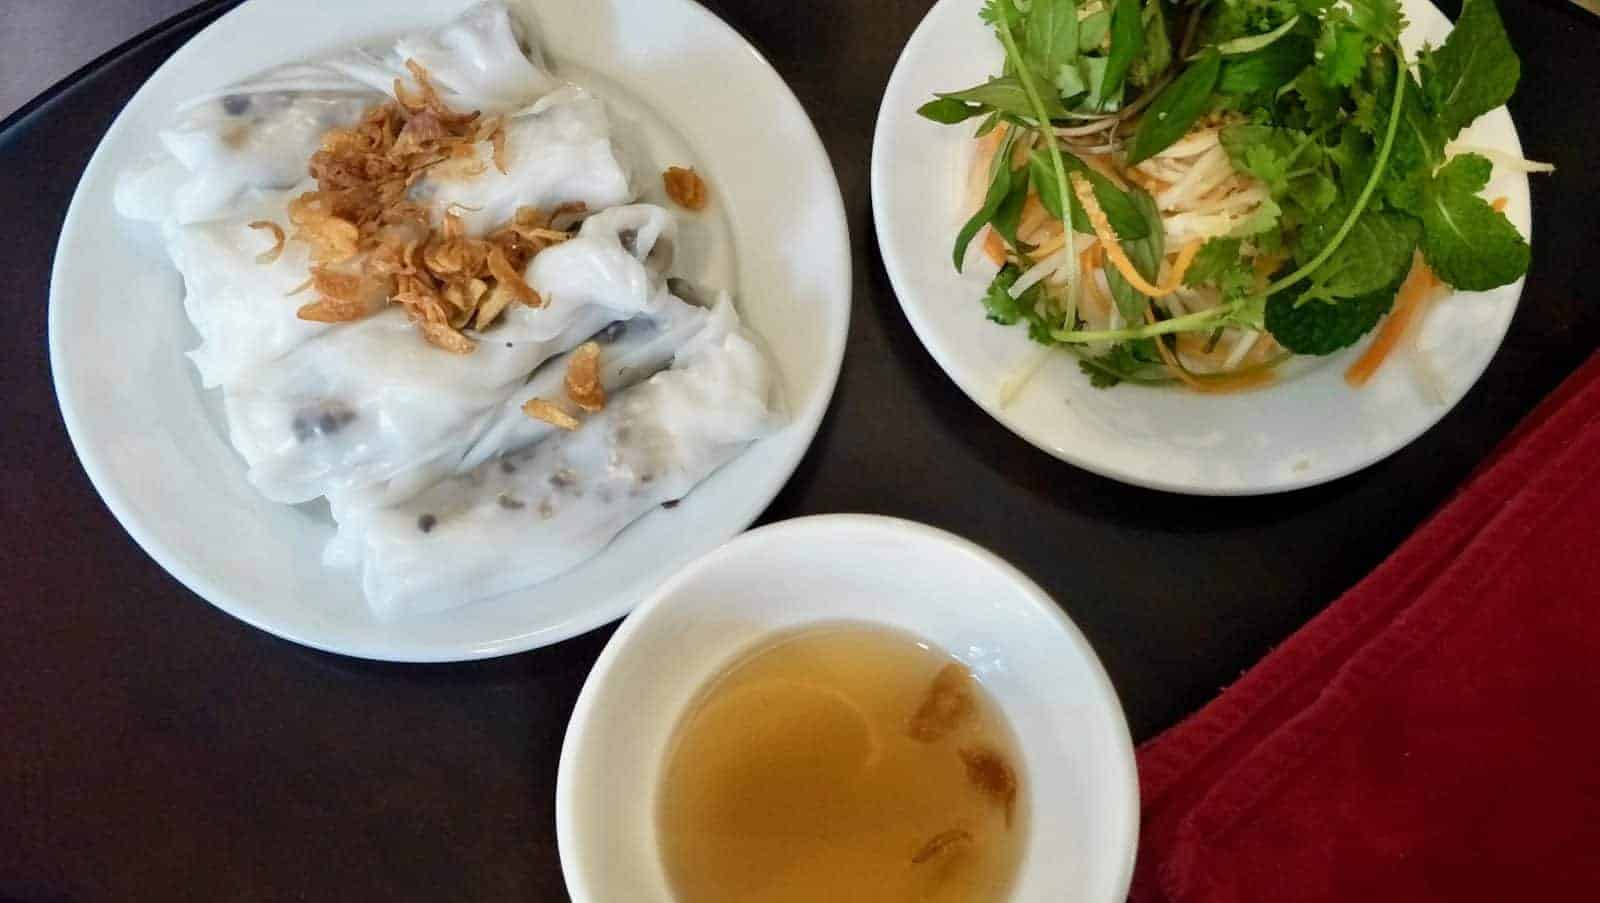 Rice rolls and salad for breakfast at the Mint Café in Hanoi.